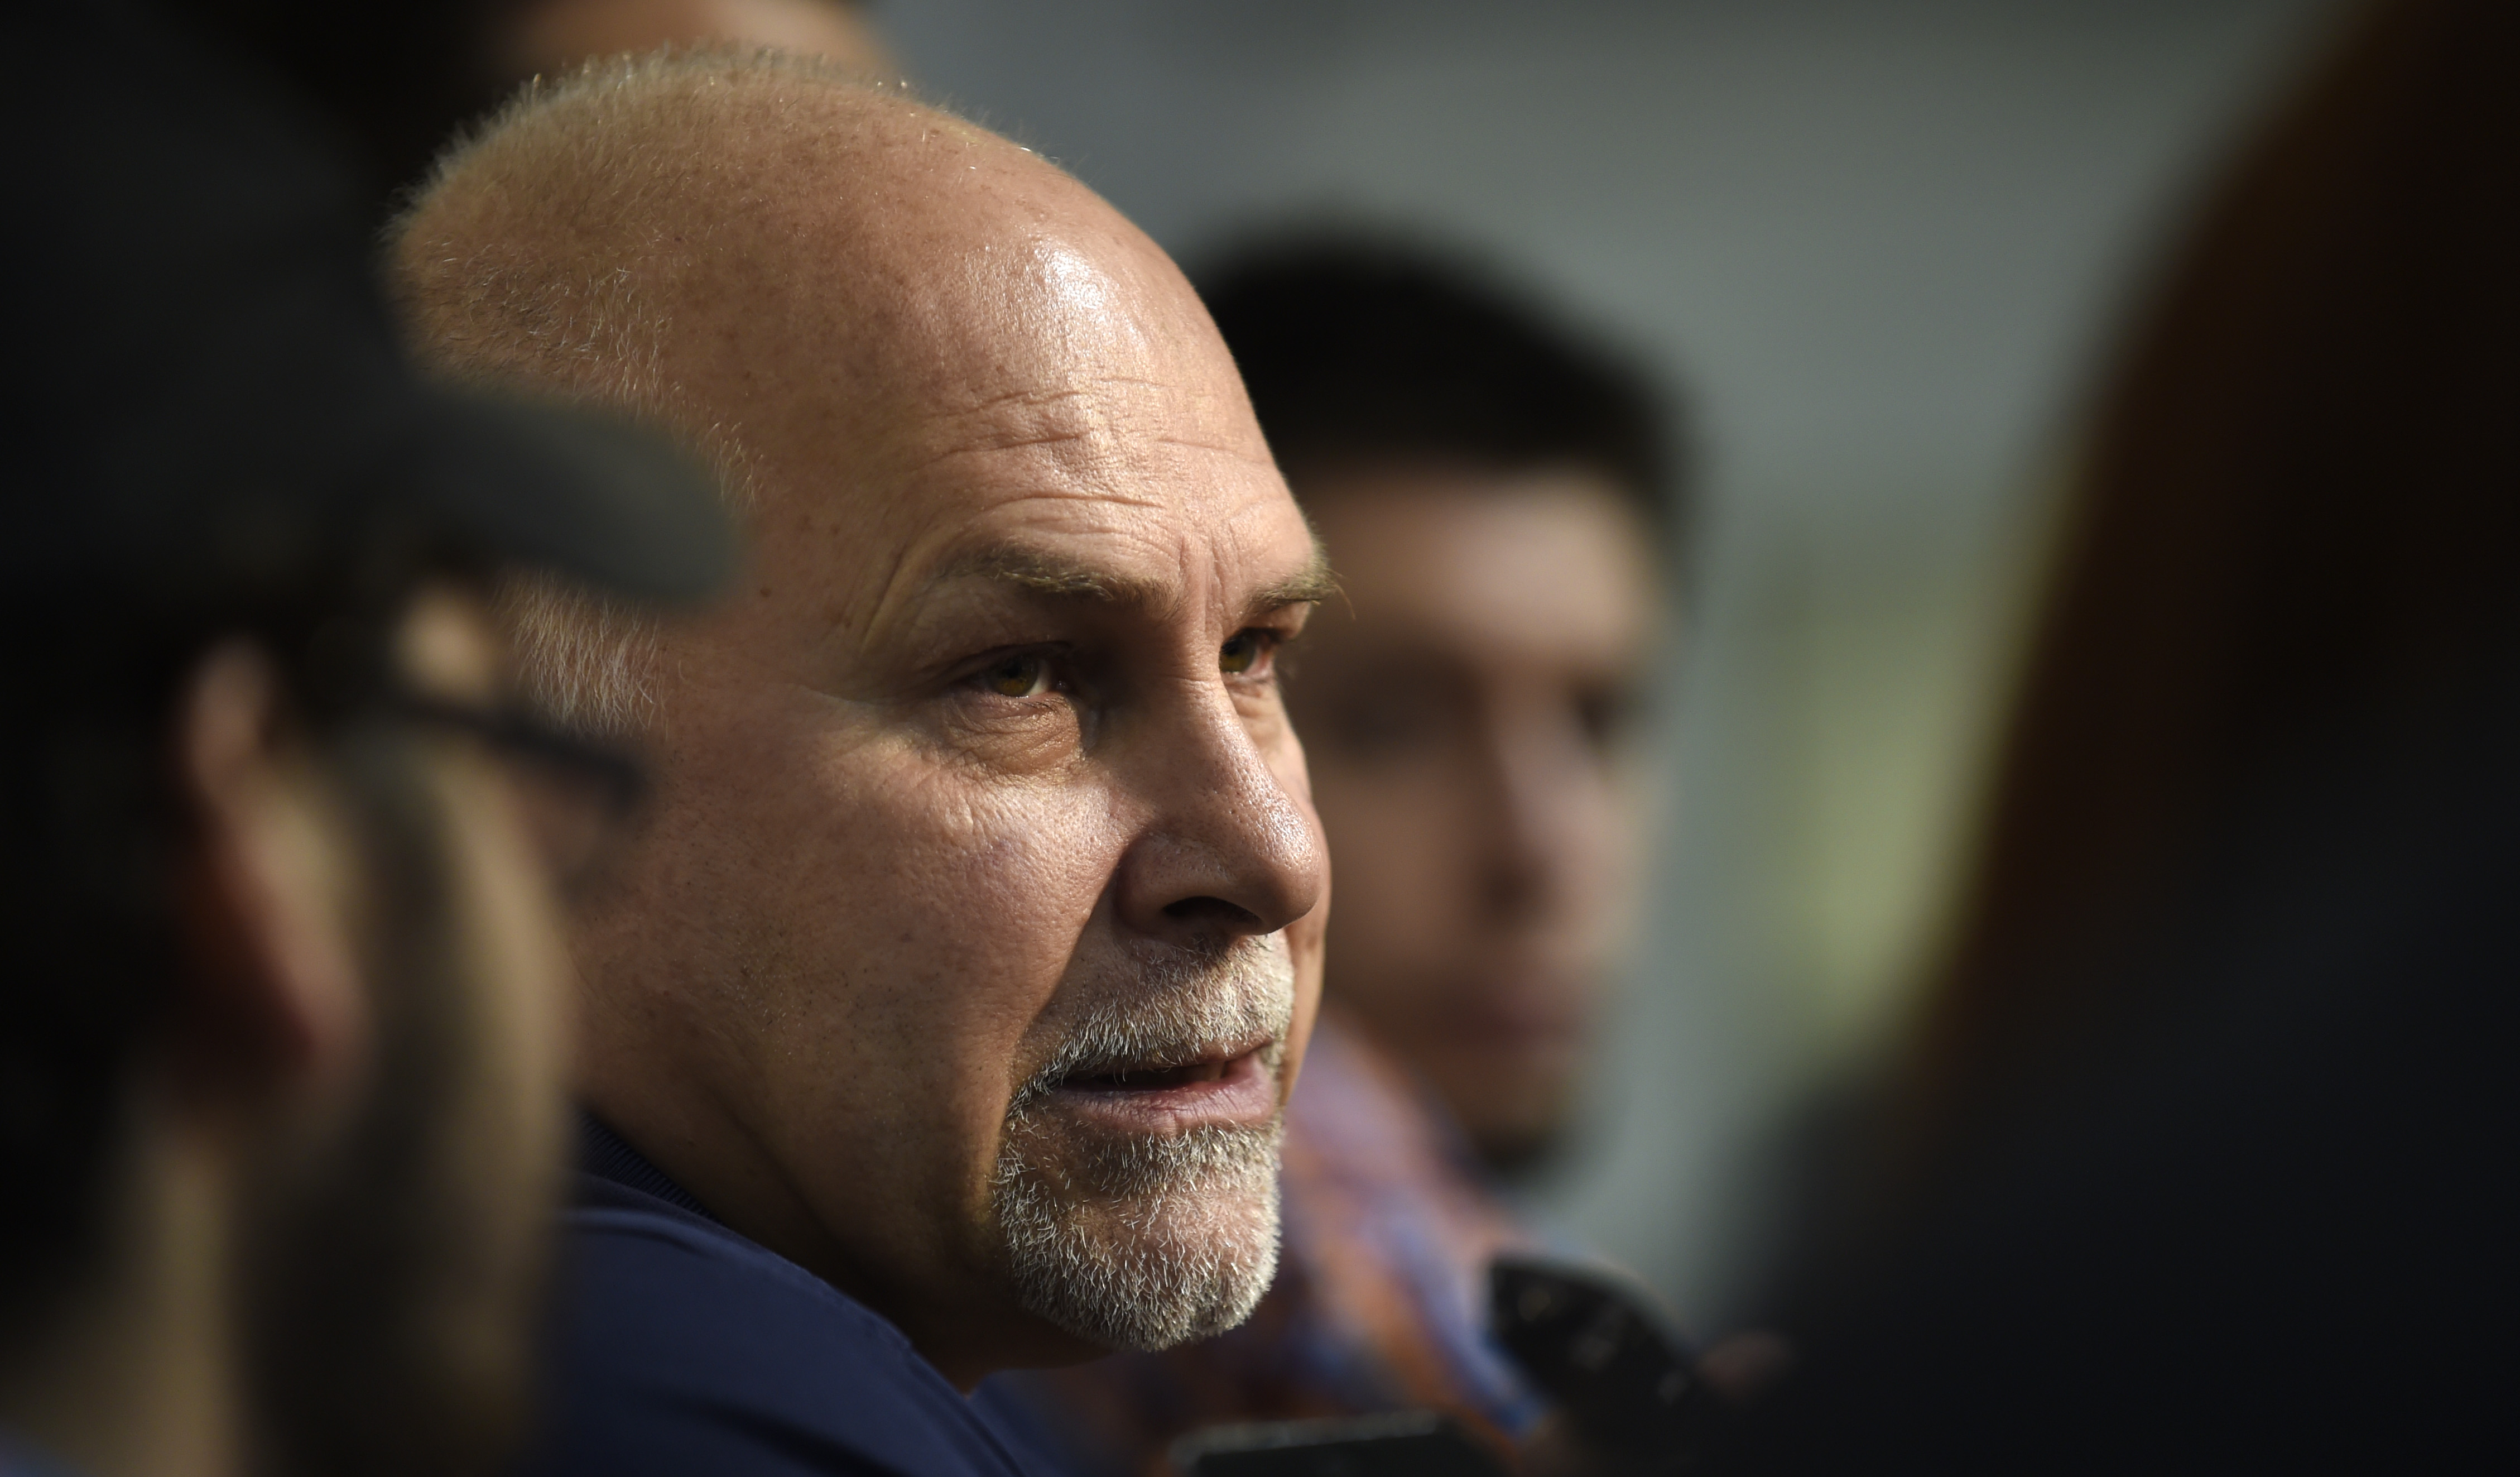 Washington Capitals coach Barry Trotz speaks to reporters at Kettler Capitals Iceplex in Arlington, Va., Friday, May 15, 2015. The Capitals hockey team was eliminated from the Stanley Cup Playoffs and spent the day cleaning out their lockers in preparatio